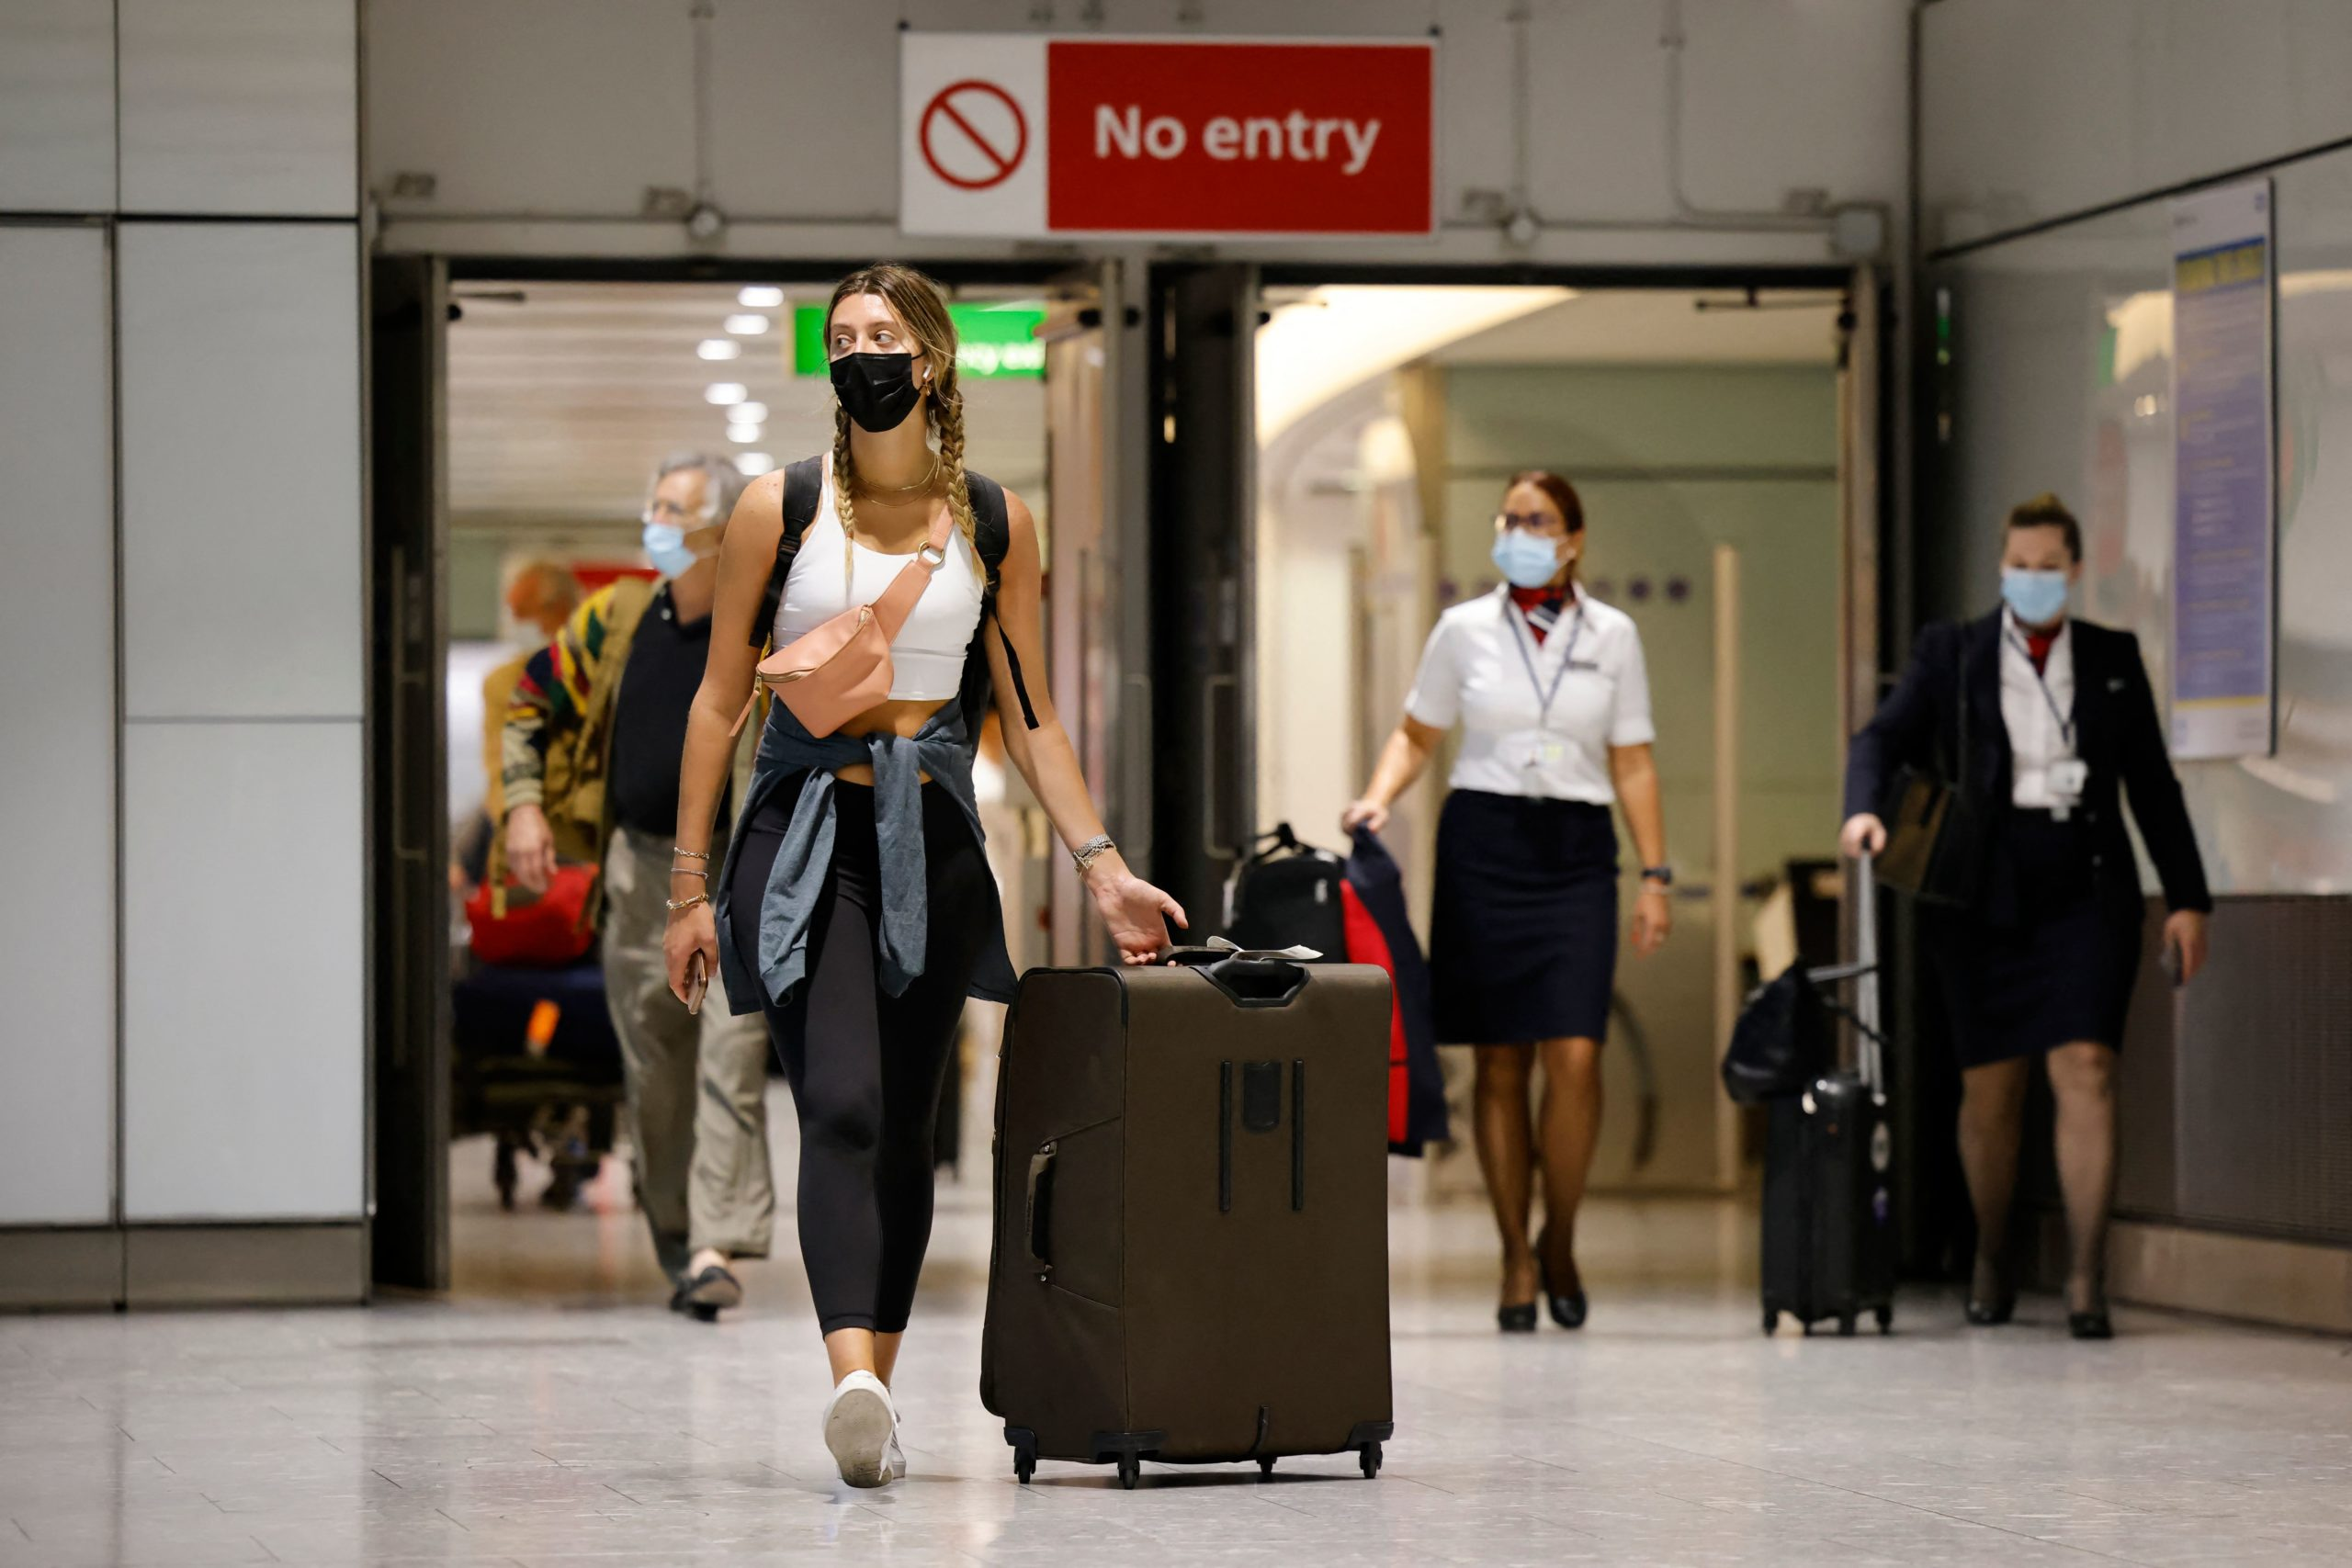 Travellers arrive at Heathrow's Terminal 5 in west London on August 2, 2021 as quarantine restrictions ease. - People fully vaccinated in the United States and European Union, except France will now be allowed to travel to England without having to quarantine on arrival. (Photo by Tolga Akmen / AFP) (Photo by TOLGA AKMEN/AFP via Getty Images)